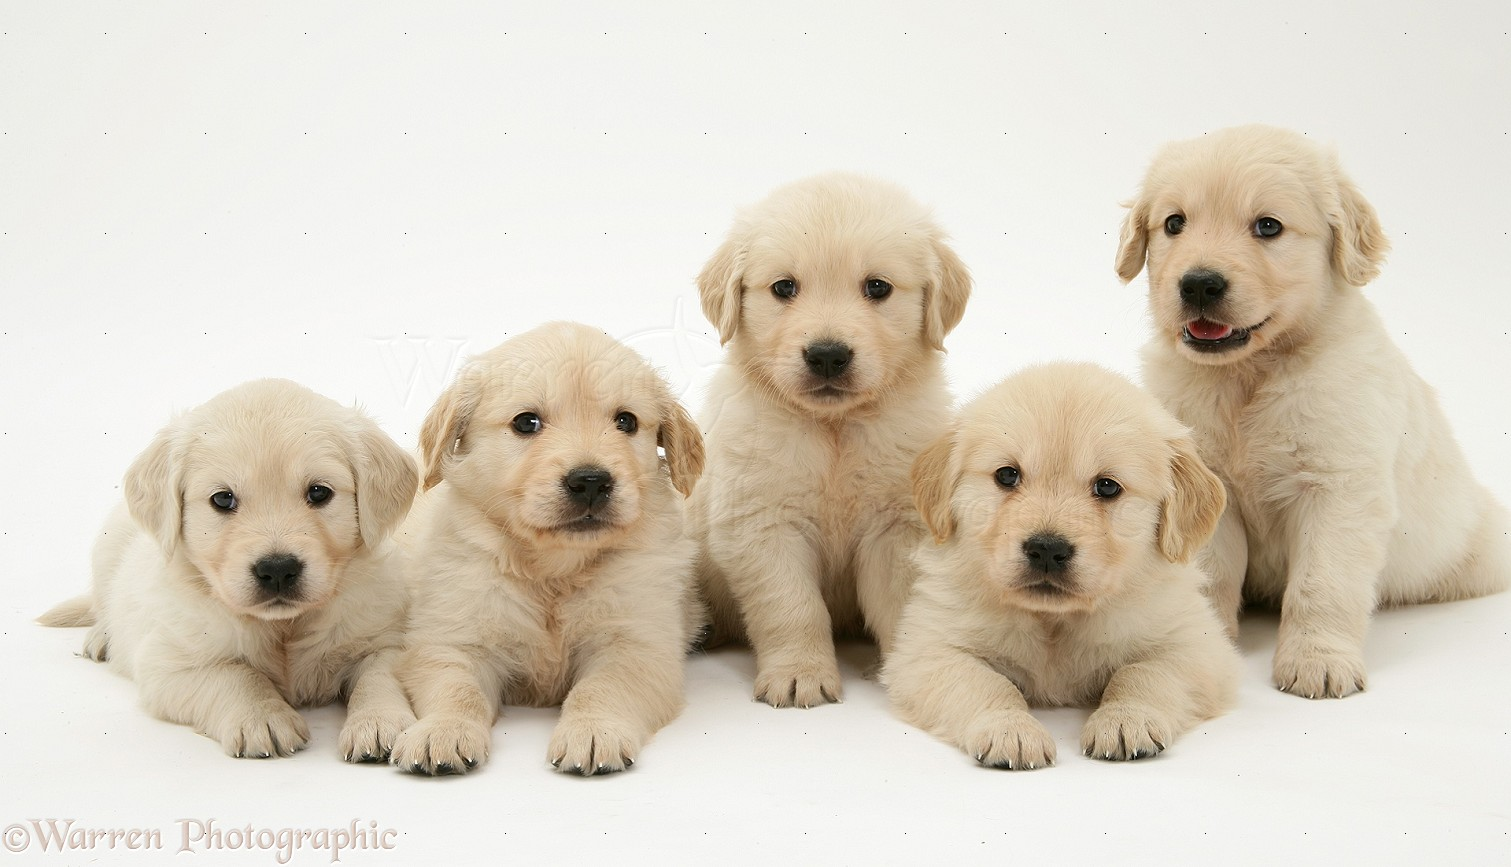 Dogs golden retriever puppies photo wp13418